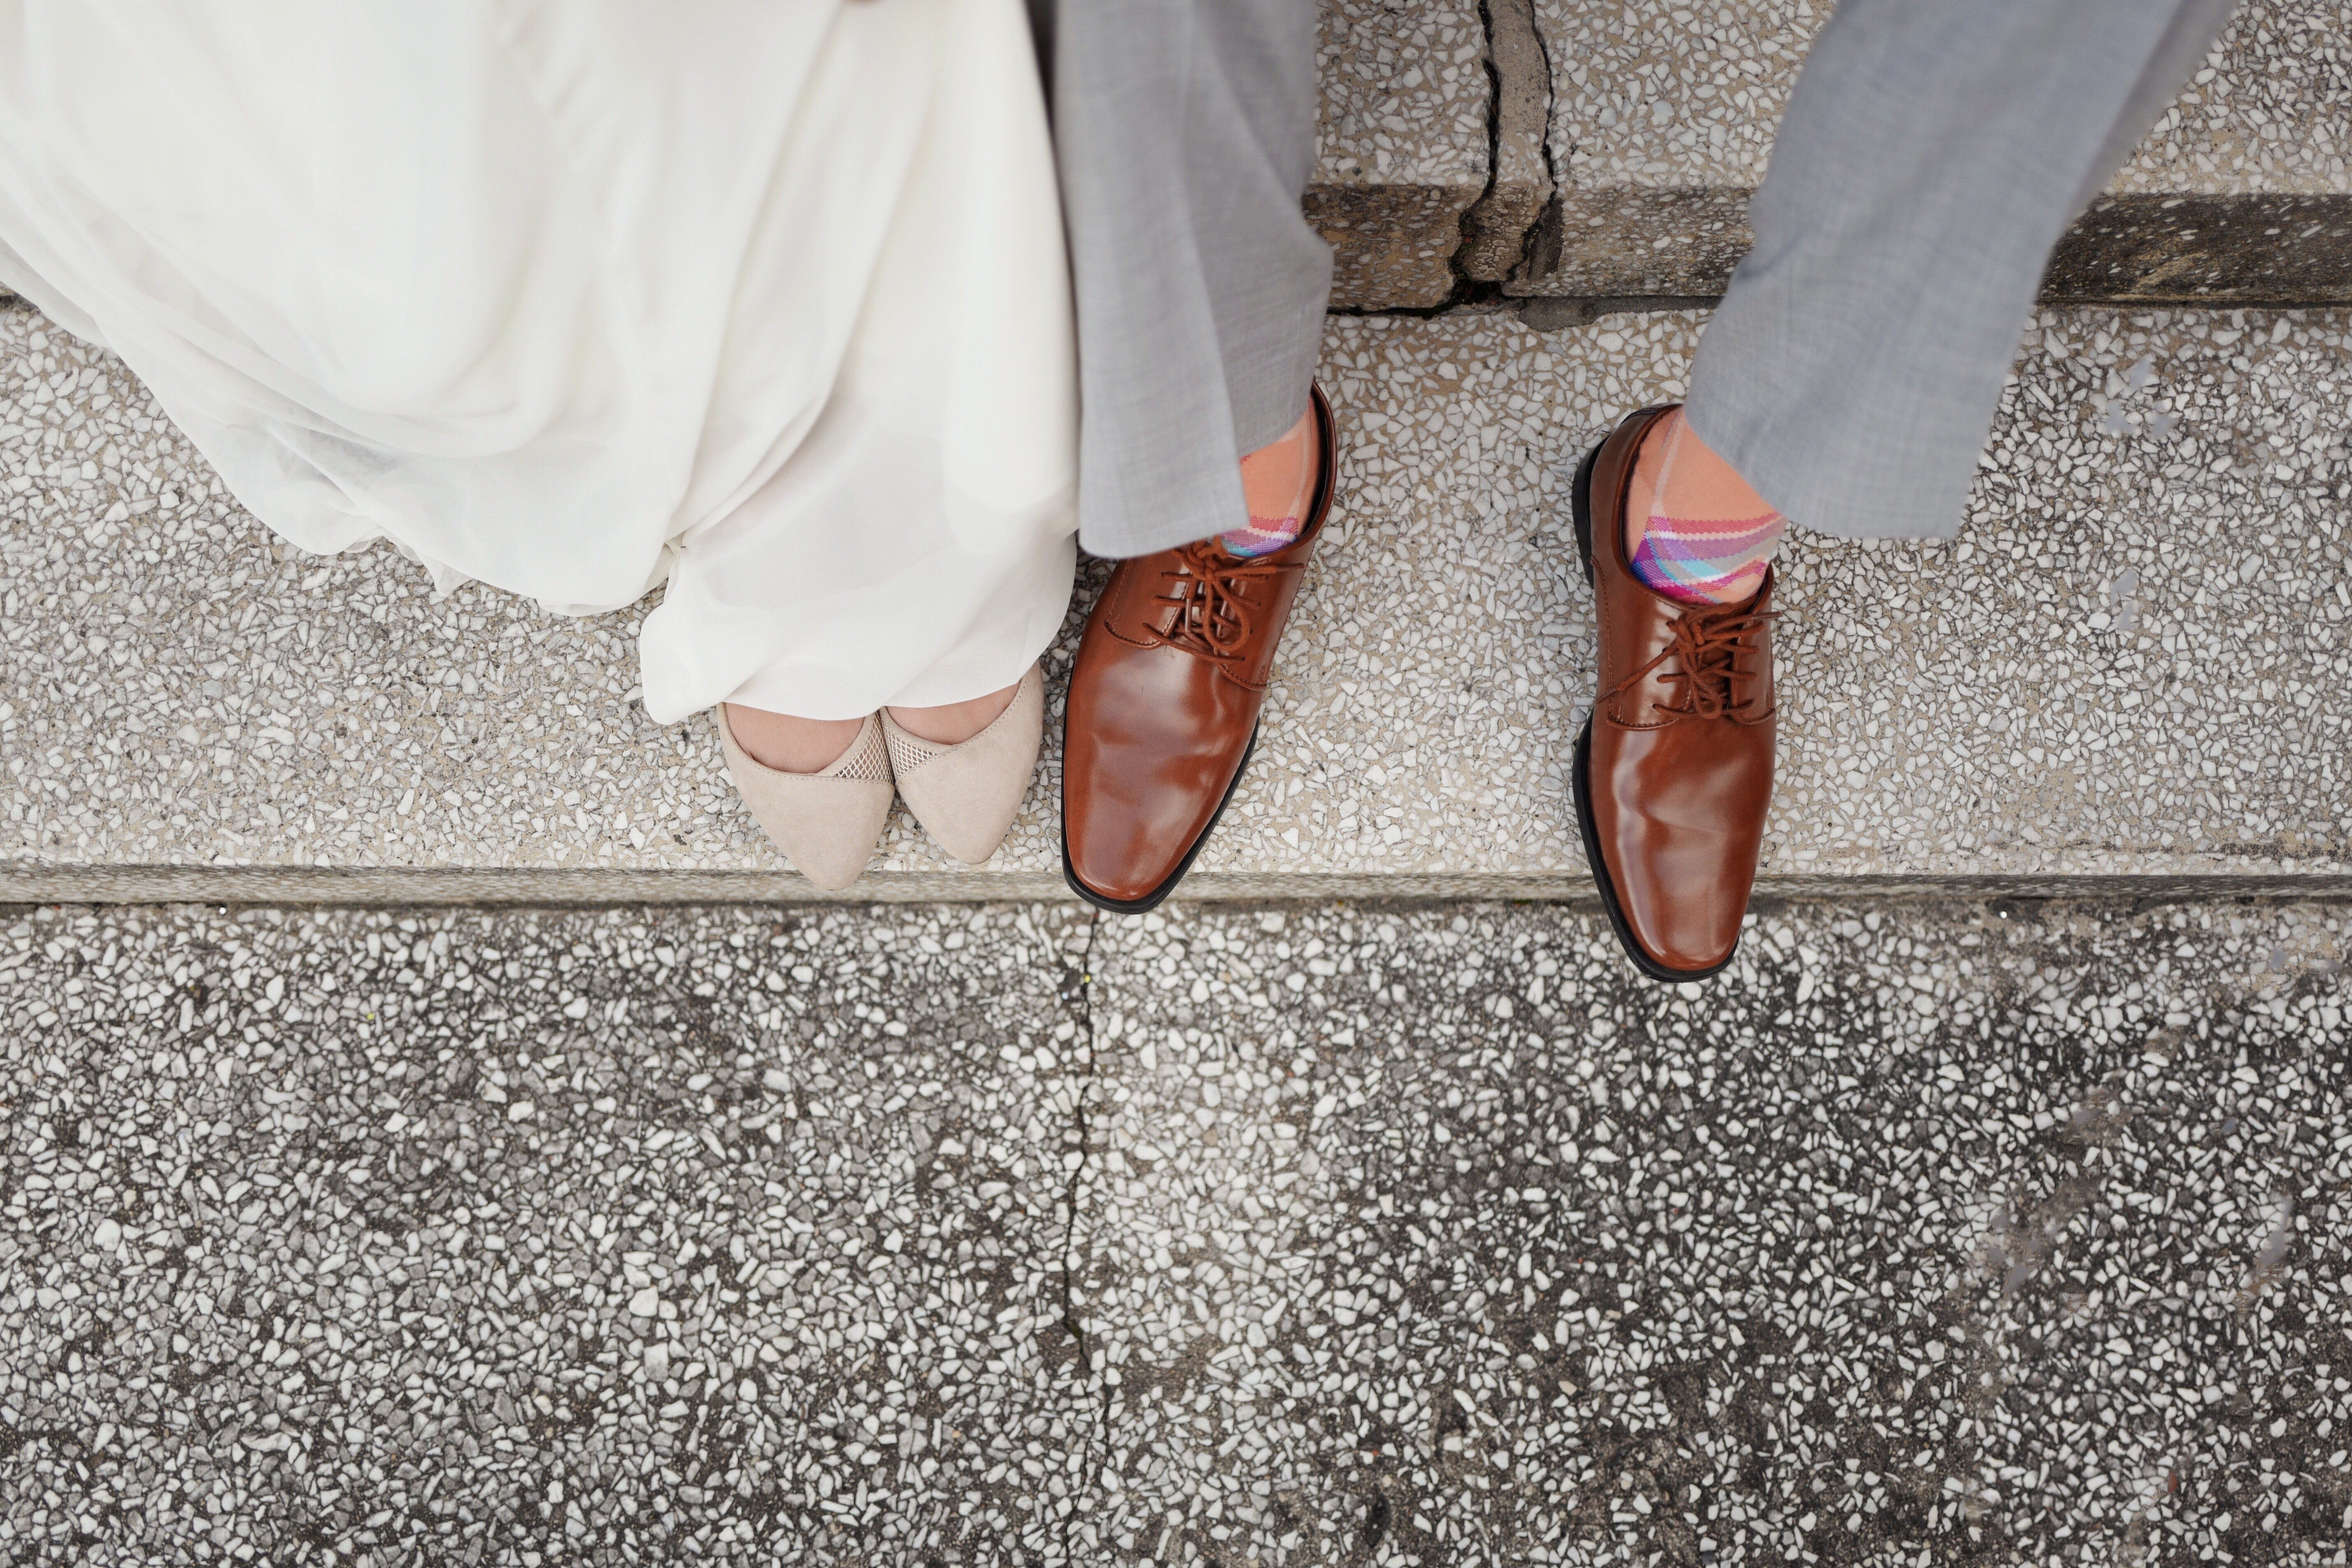 A couple's feet on their wedding day, showing off their dress shoes. He wears colorful socks.